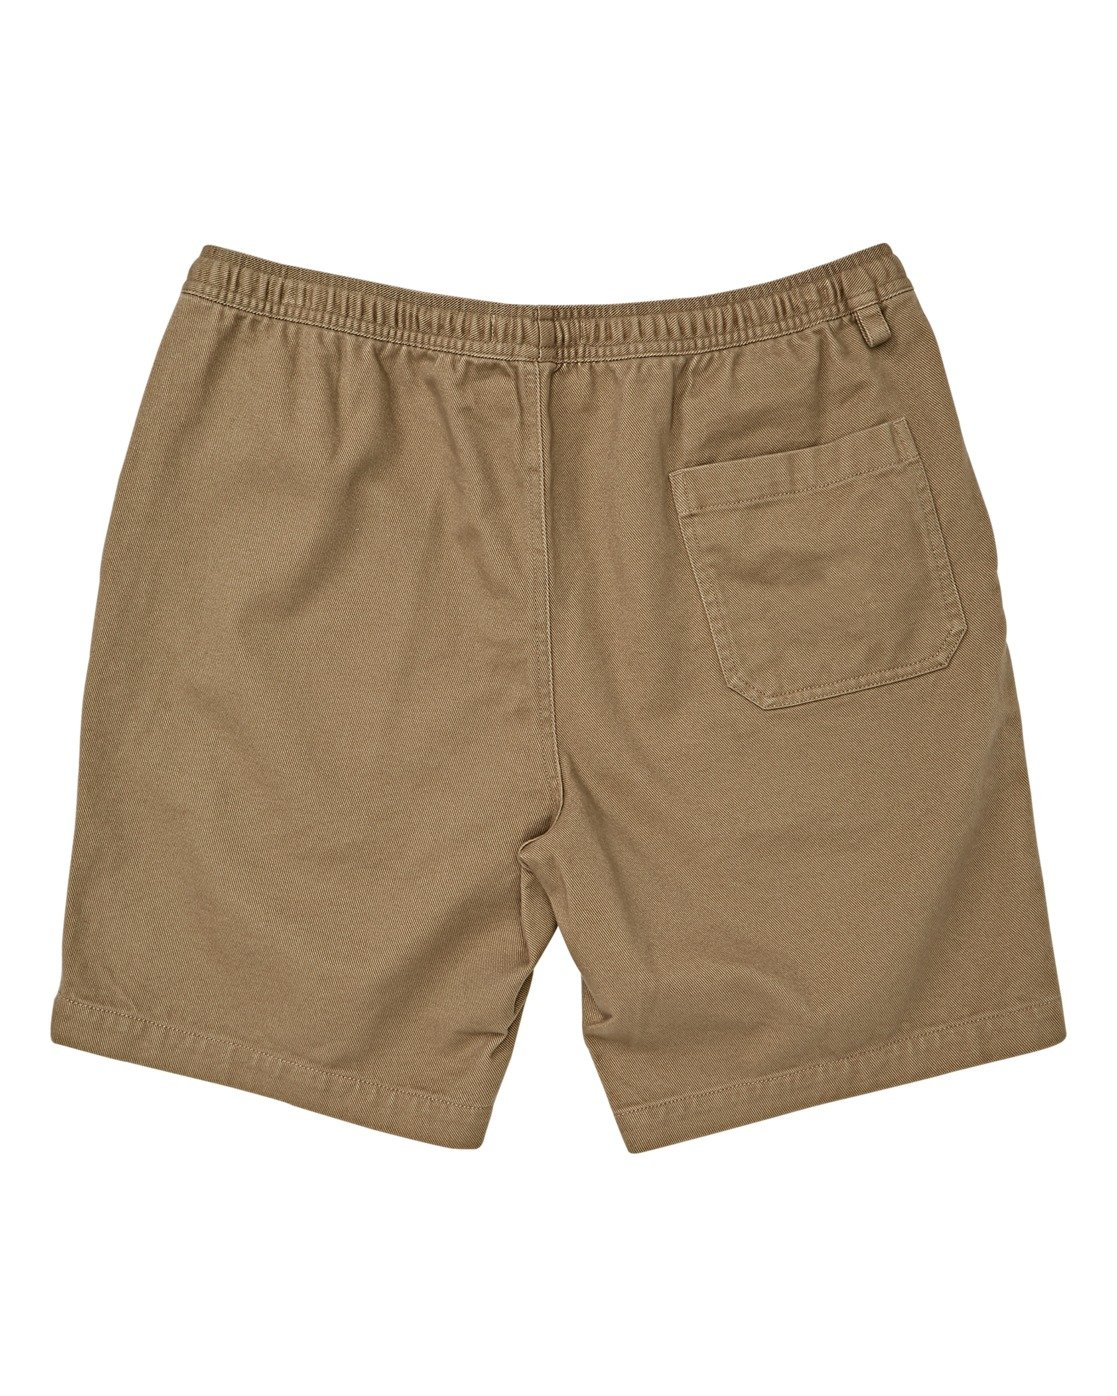 Billabong Boys Larry Layback Sunday Walkshorts